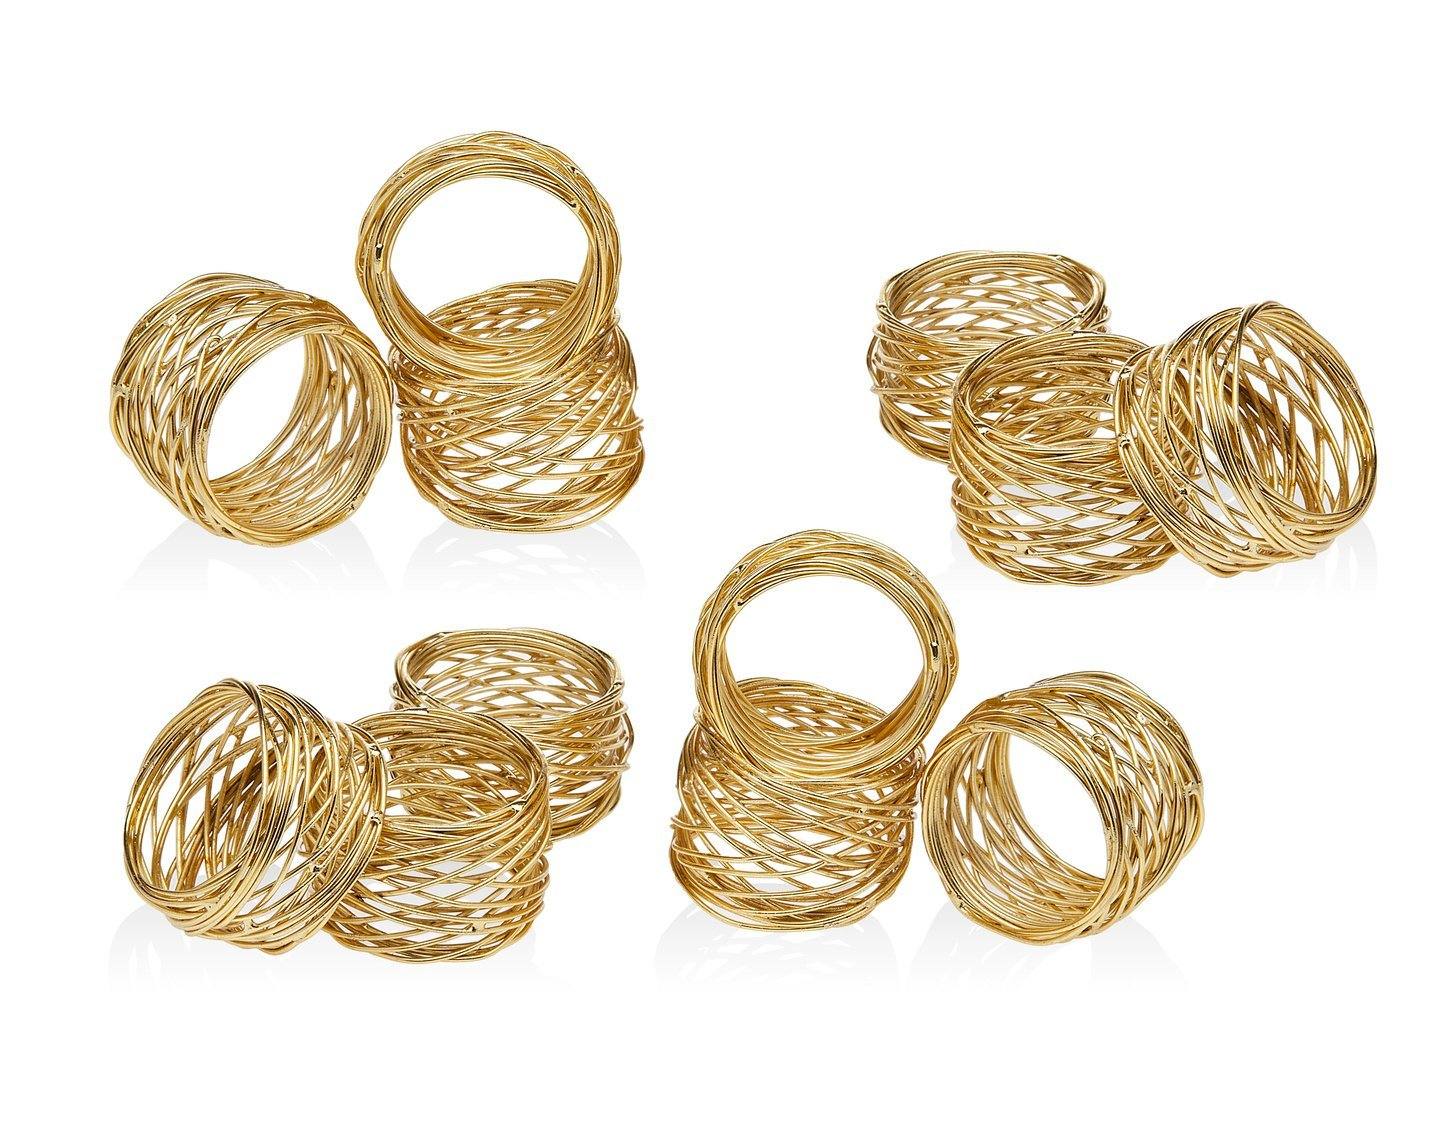 Set of 12 Gold Round Mesh Napkin Rings Godinger Silver Art M_napkin_ring_001_gold_12_god